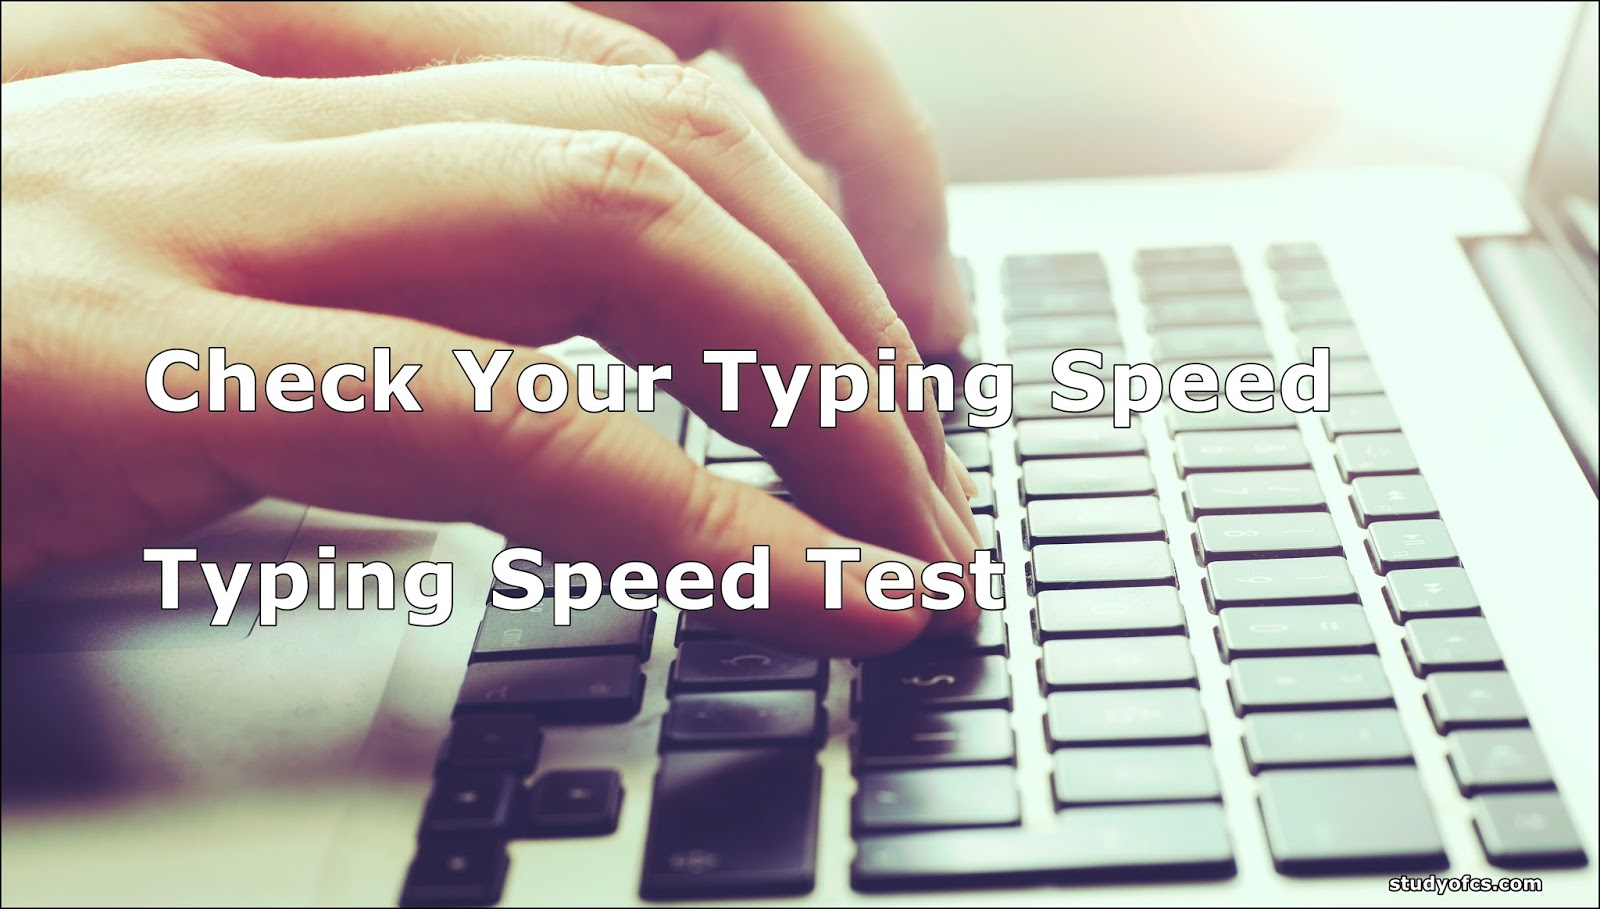 Typing test last 10 fingers, Typing test paragraph, Typing finger, Typing practice, Advanced 10 fast fingers, How to create a typing test website, Advanced typing test, Average typing speed,